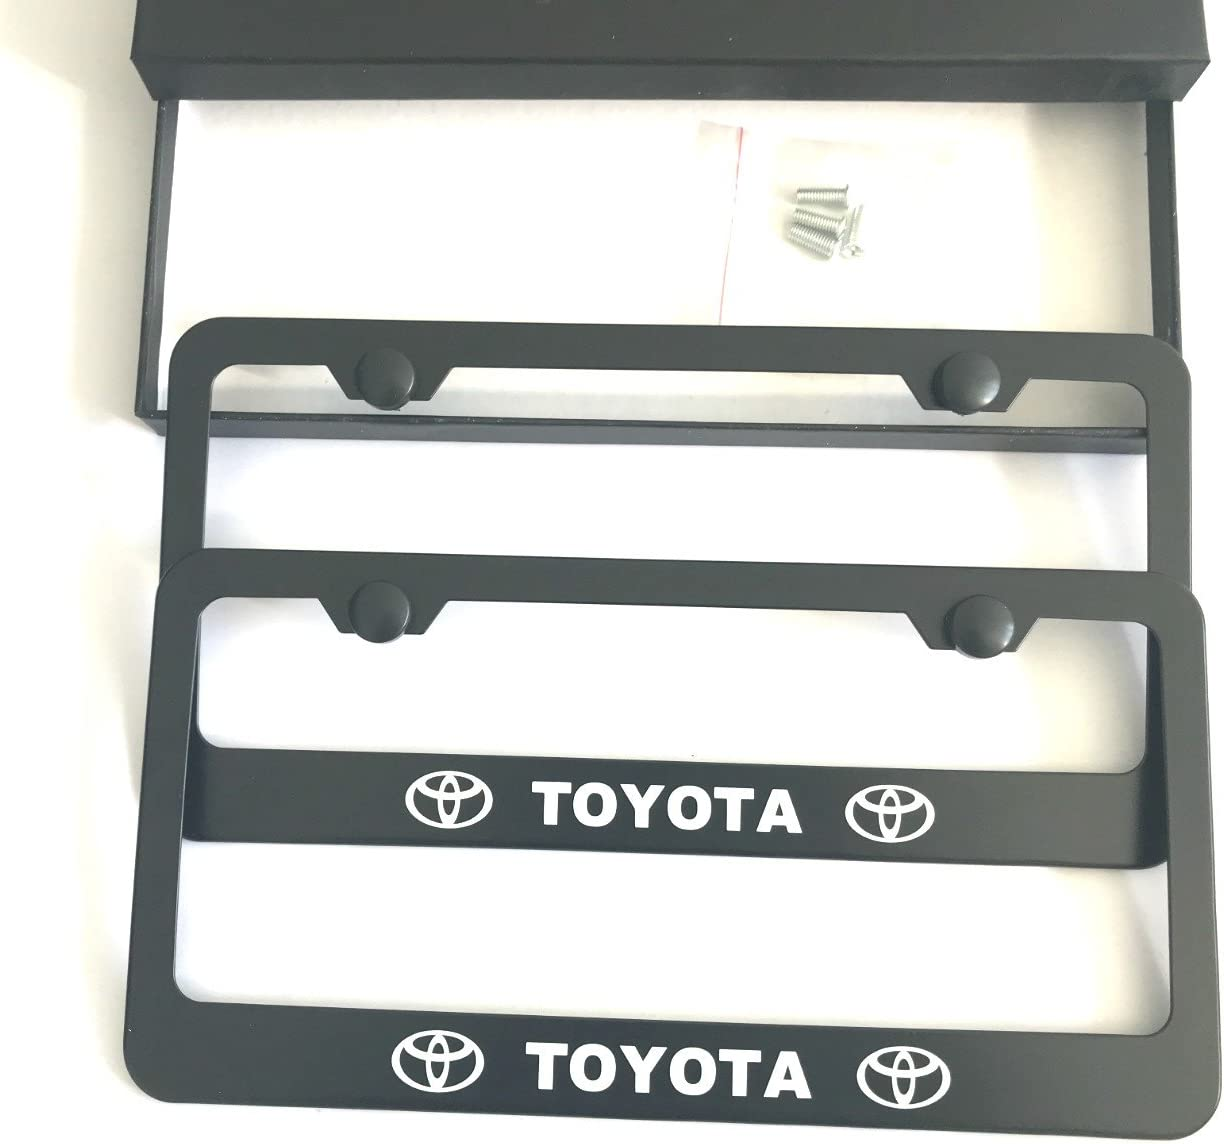 MAX WHOLESALE Stainless Steel License Plate Frame Rust Free With Bolt Caps For Toyota Cover (2-Black)